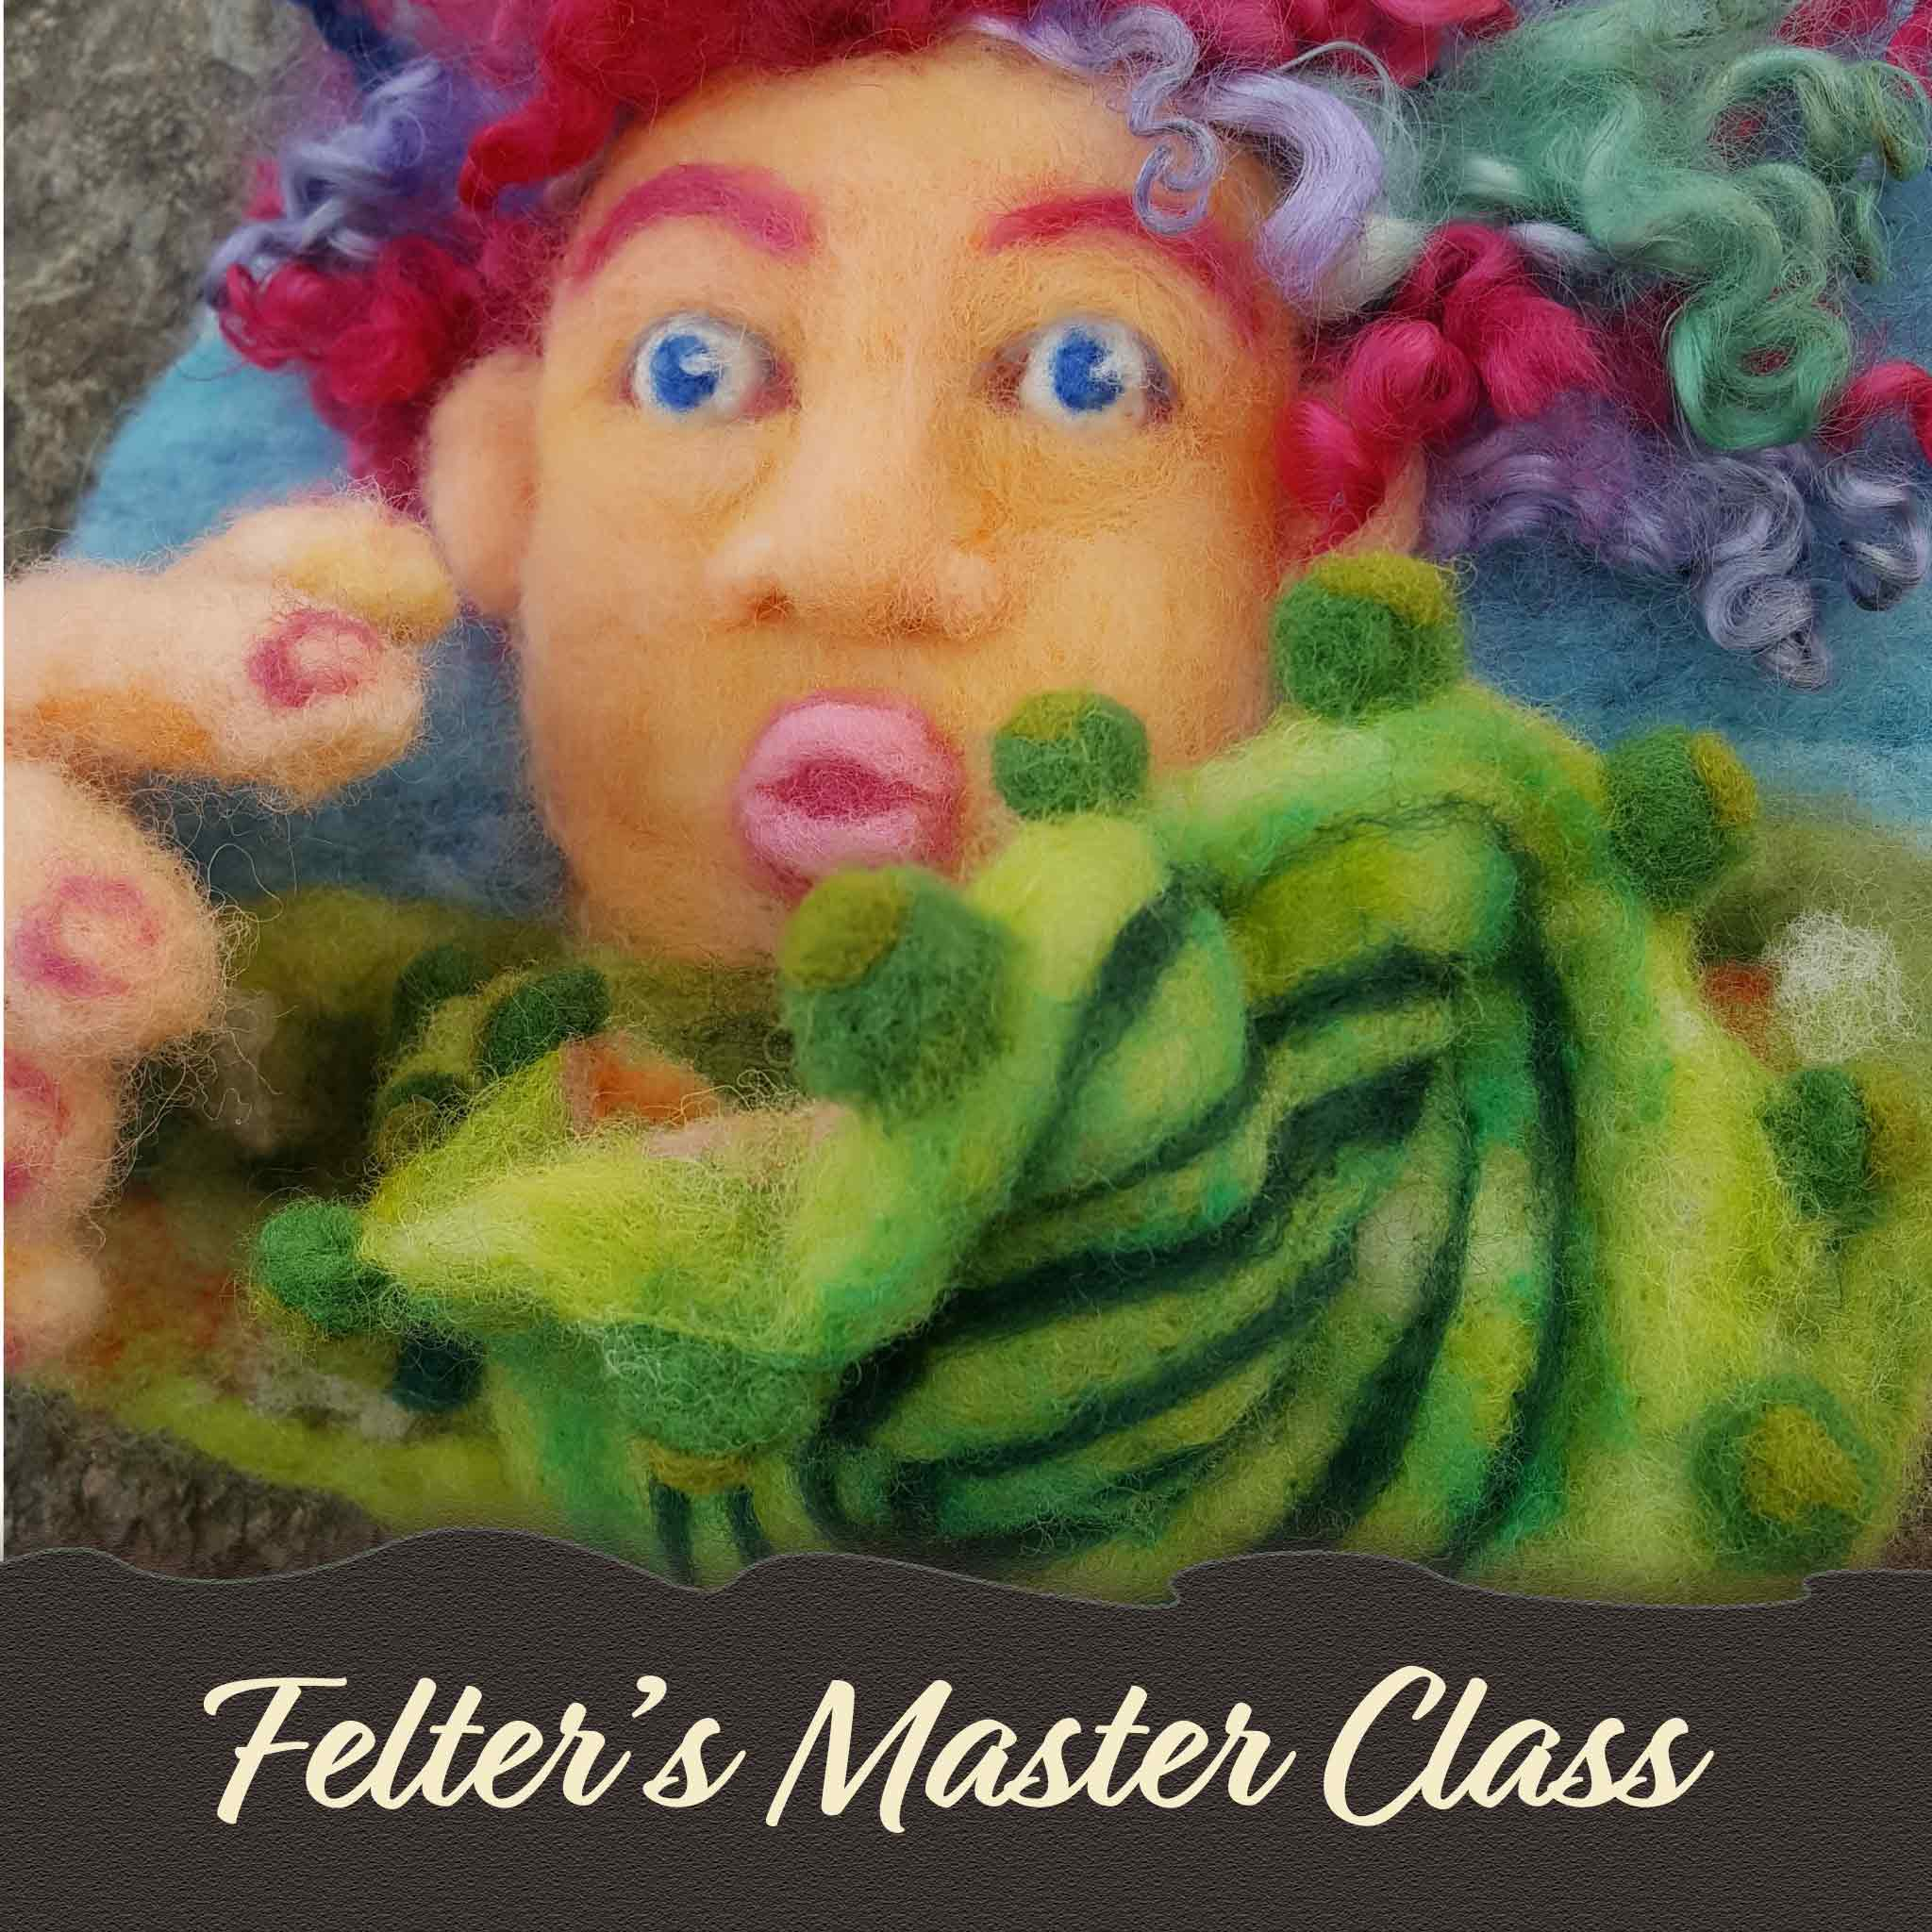 Felting master class with artist and instructor Hillary Dow Mermaid